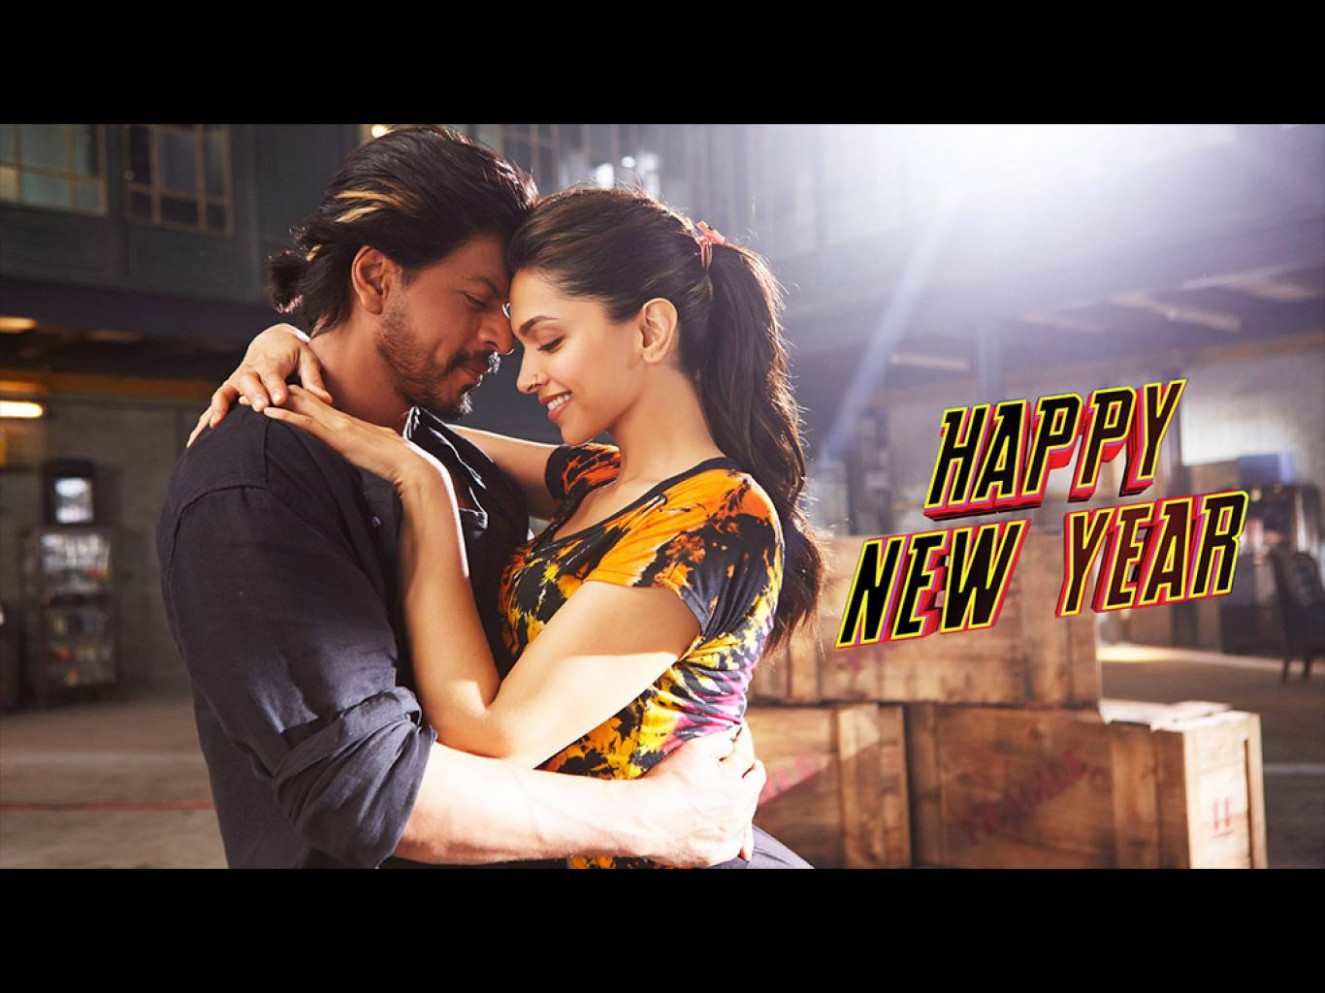 Happy New Year Movie HD Wallpapers | Happy New Year HD ...